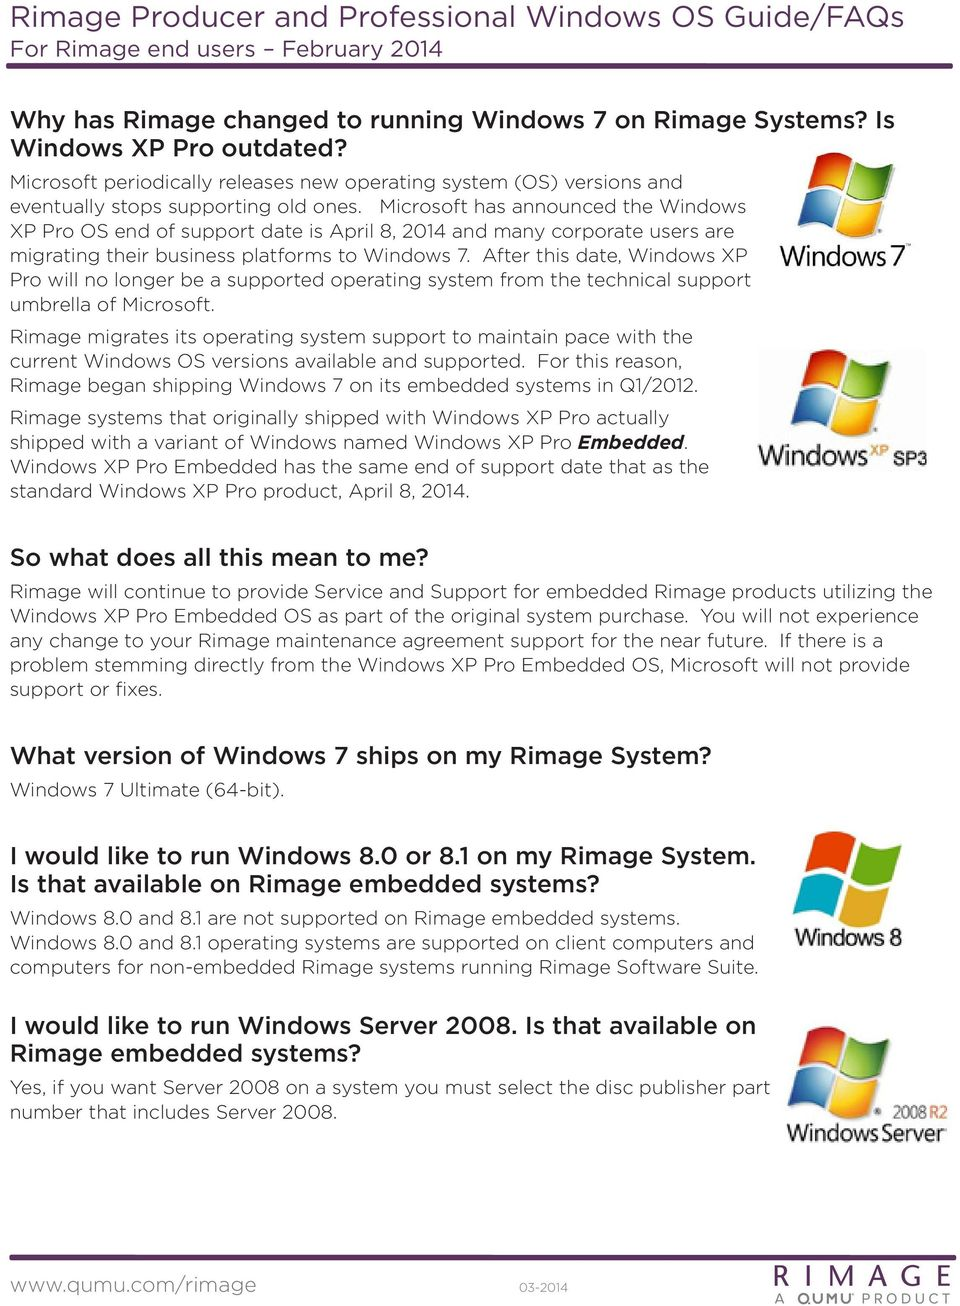 Rimage Producer and Professional Windows OS Guide/FAQs For